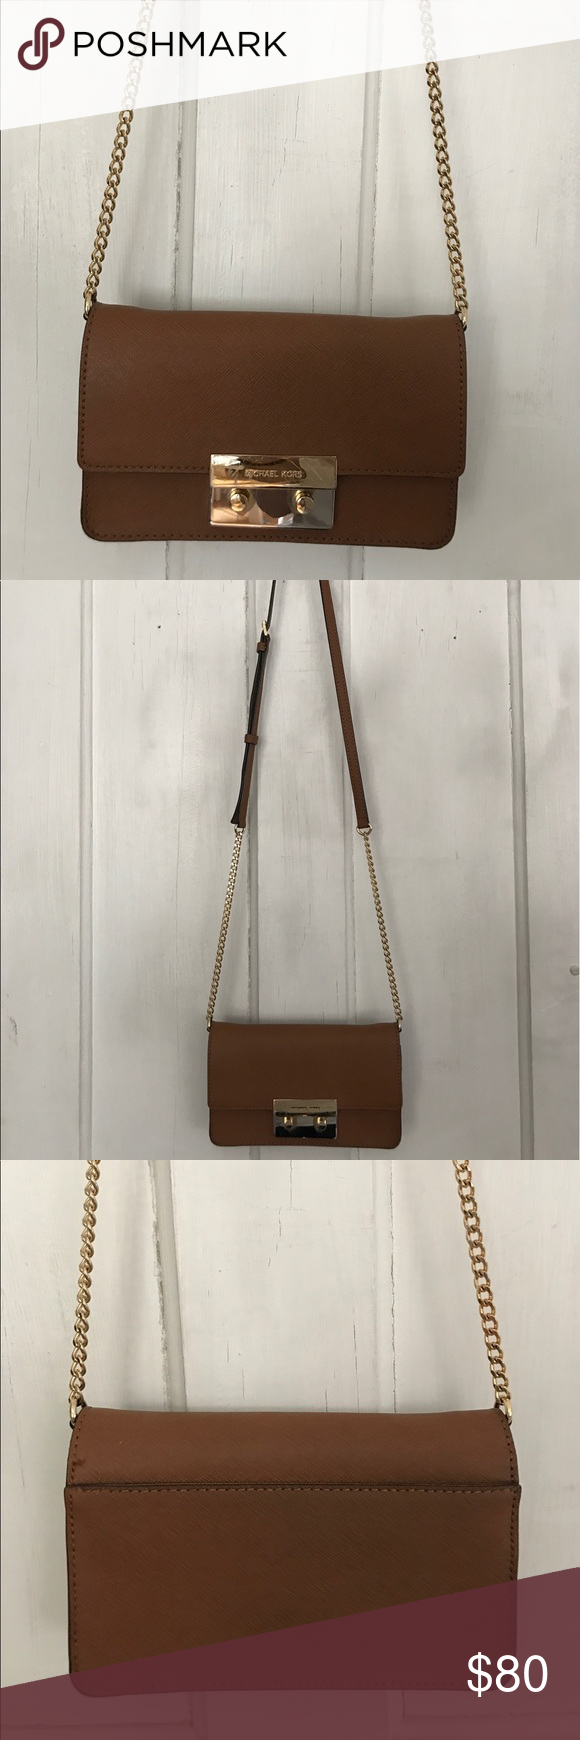 Michael Kors crossbody bag Gently used. No damage. Inside has three compartments along with a main zippered part and pockets for credit cards along the back. Interior has MK signature design allover. Michael Kors Bags